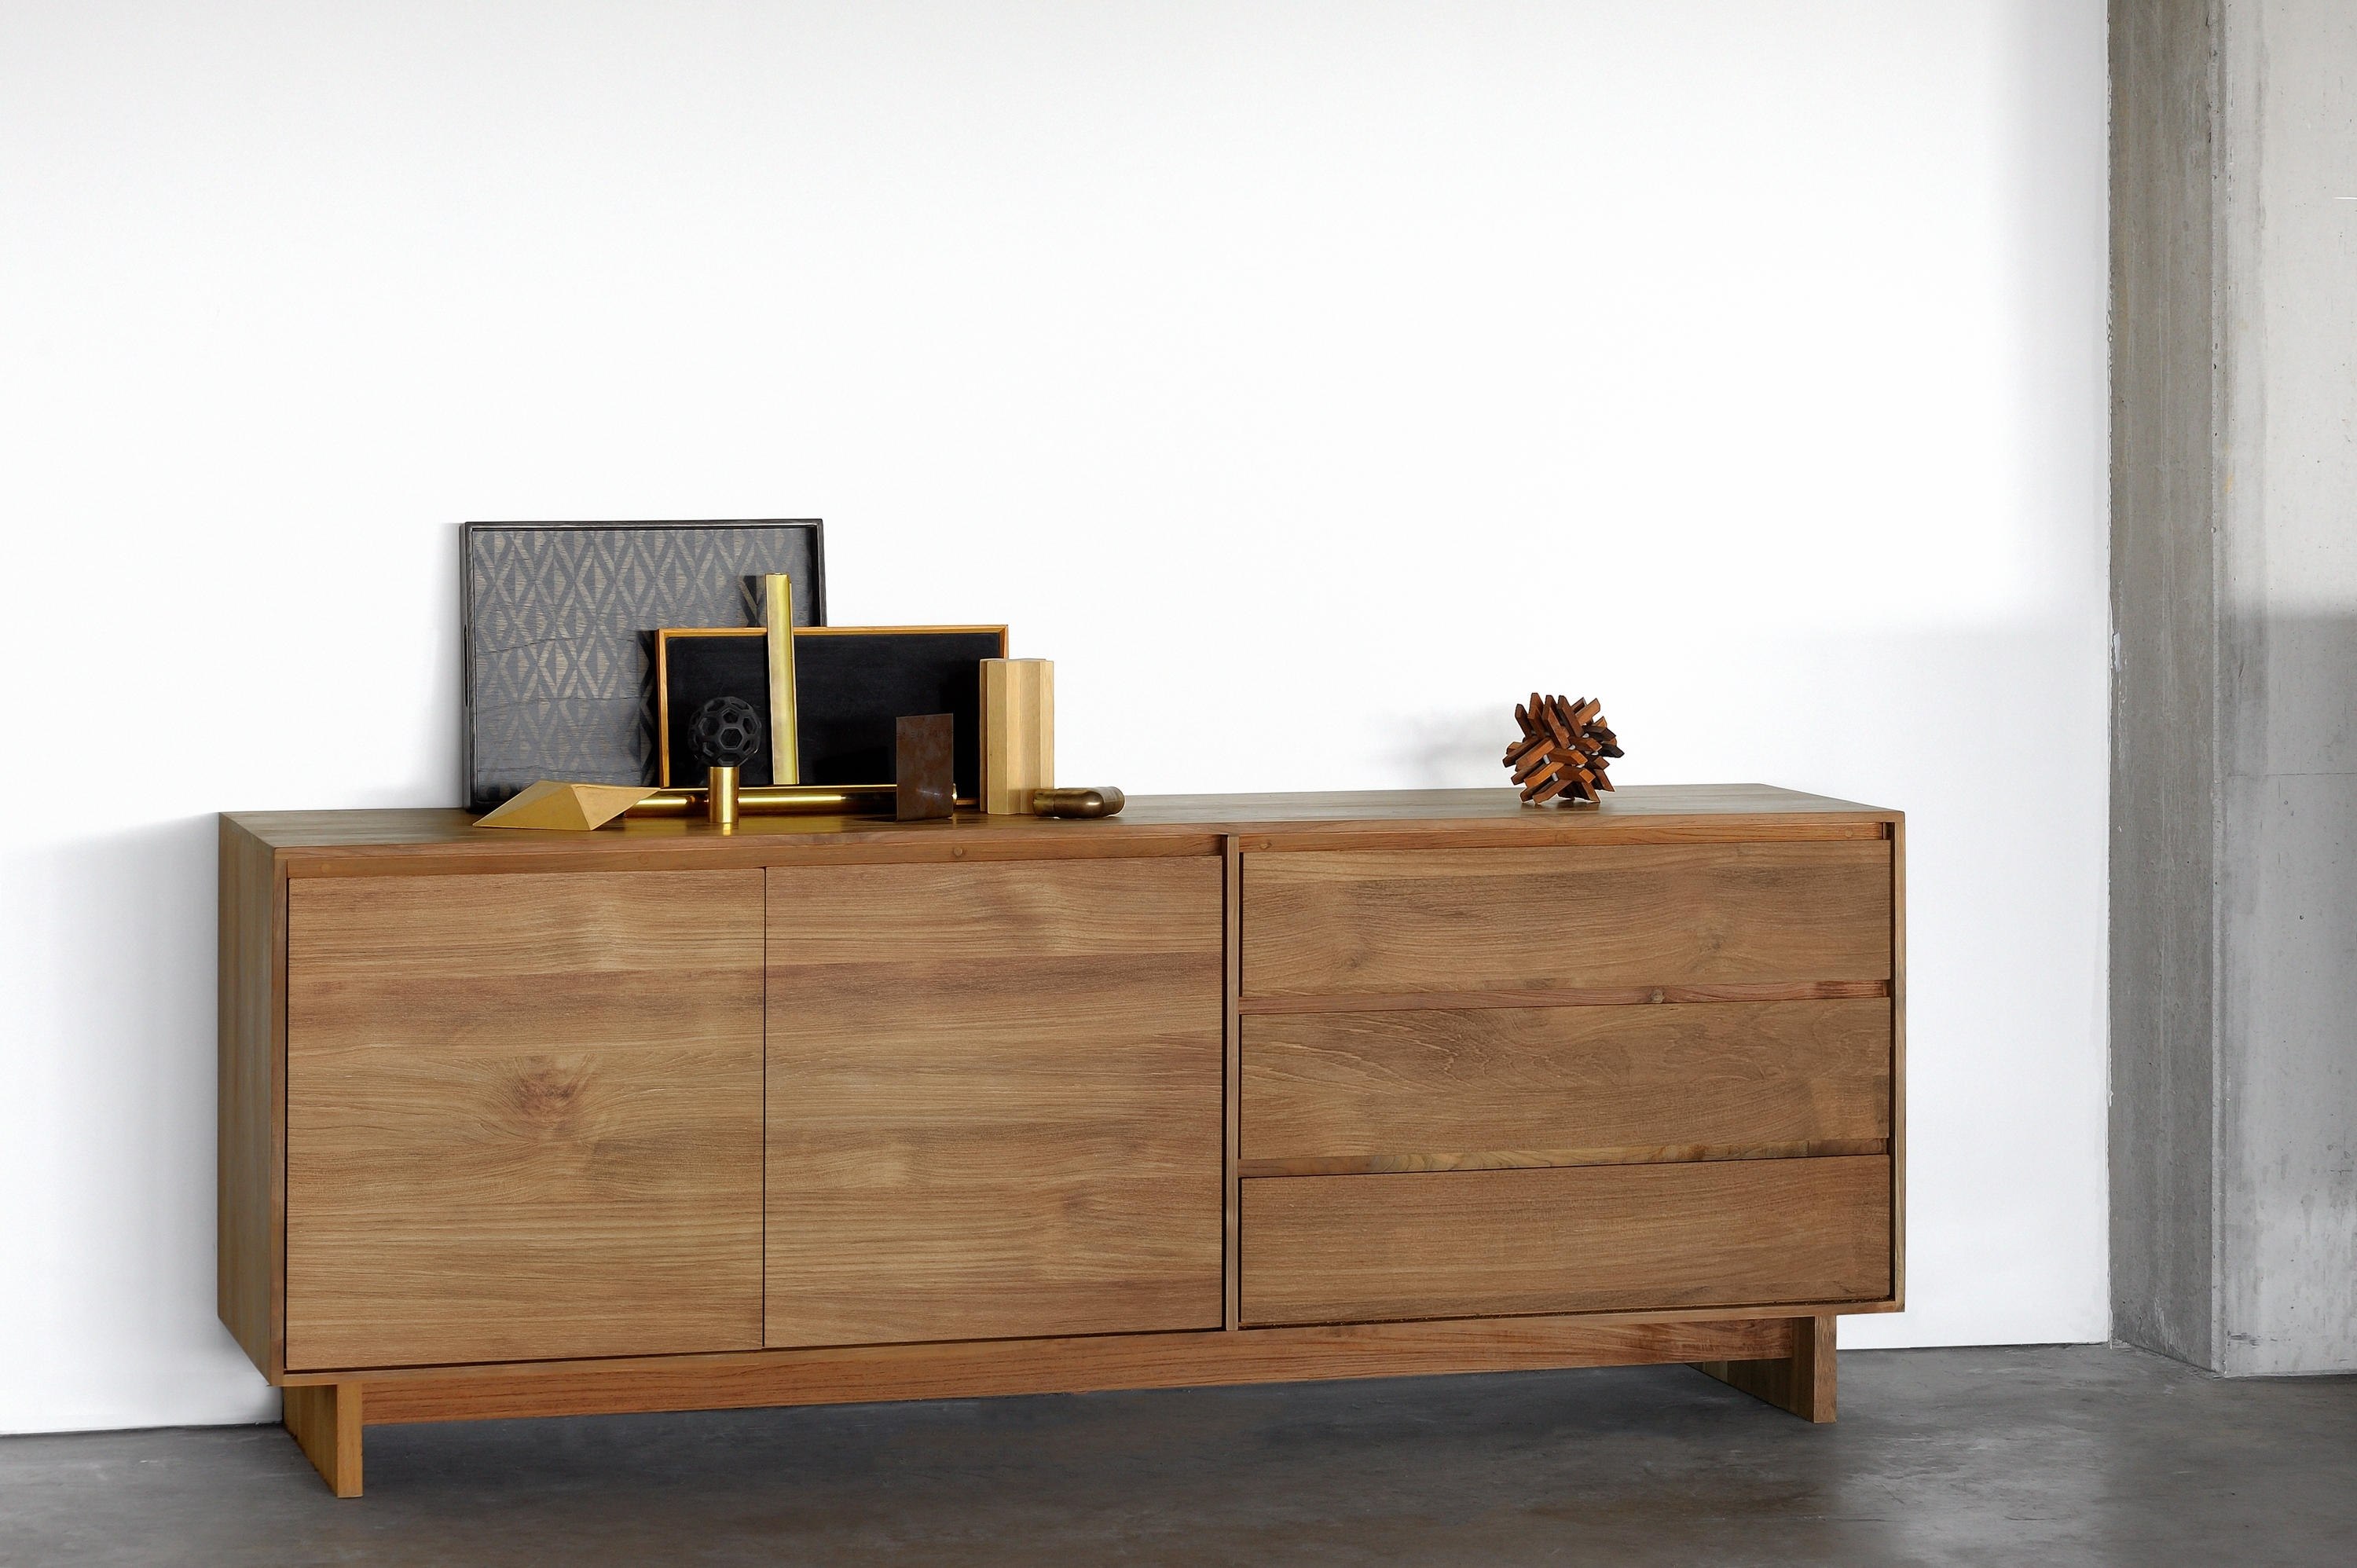 Teak Wave Sideboard - Sideboards From Ethnicraft | Architonic with regard to Calhoun Sideboards (Image 23 of 30)